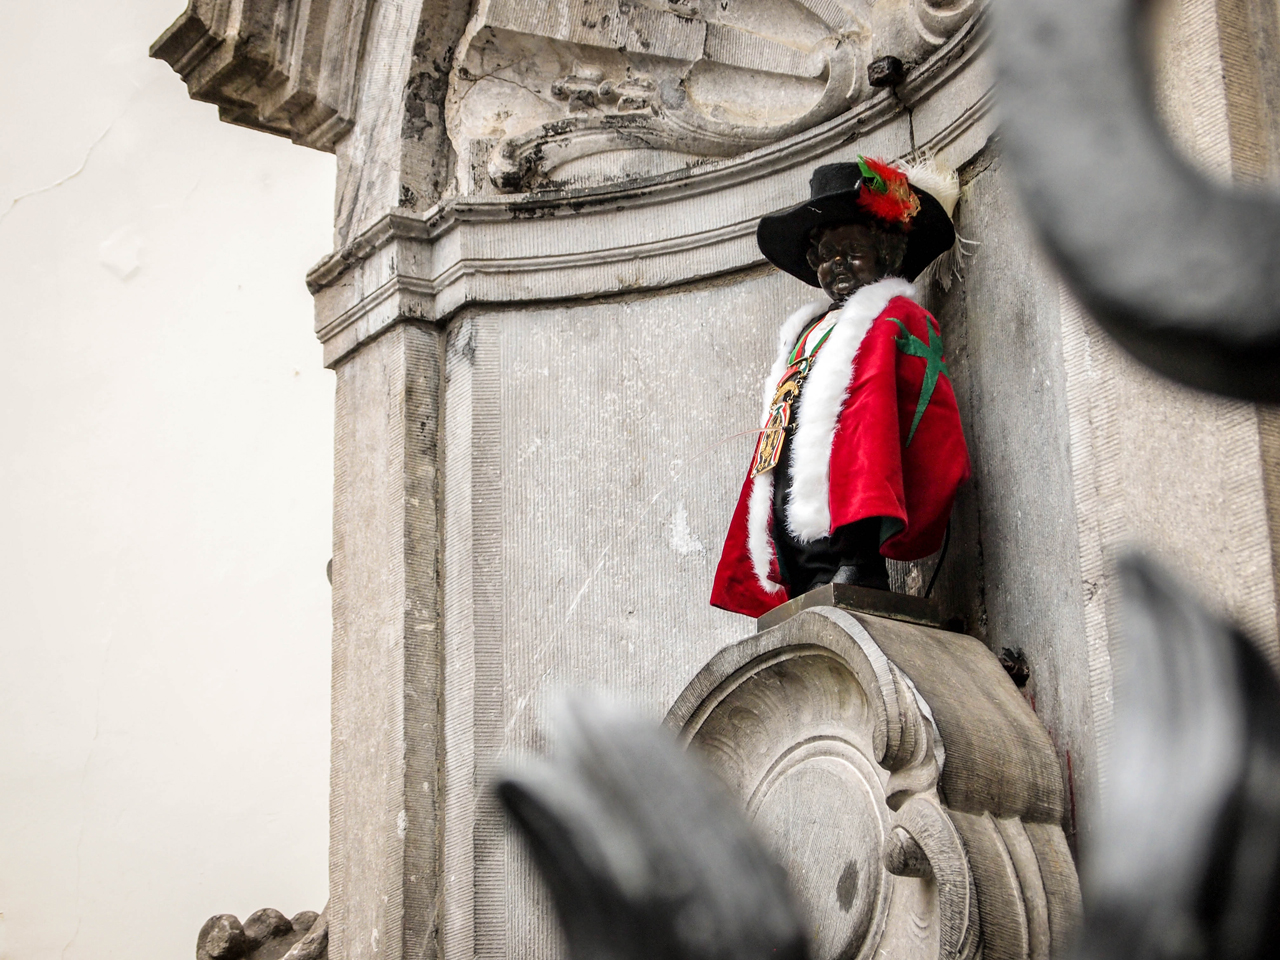 The statue of Manneken Pis dressed in... something :)